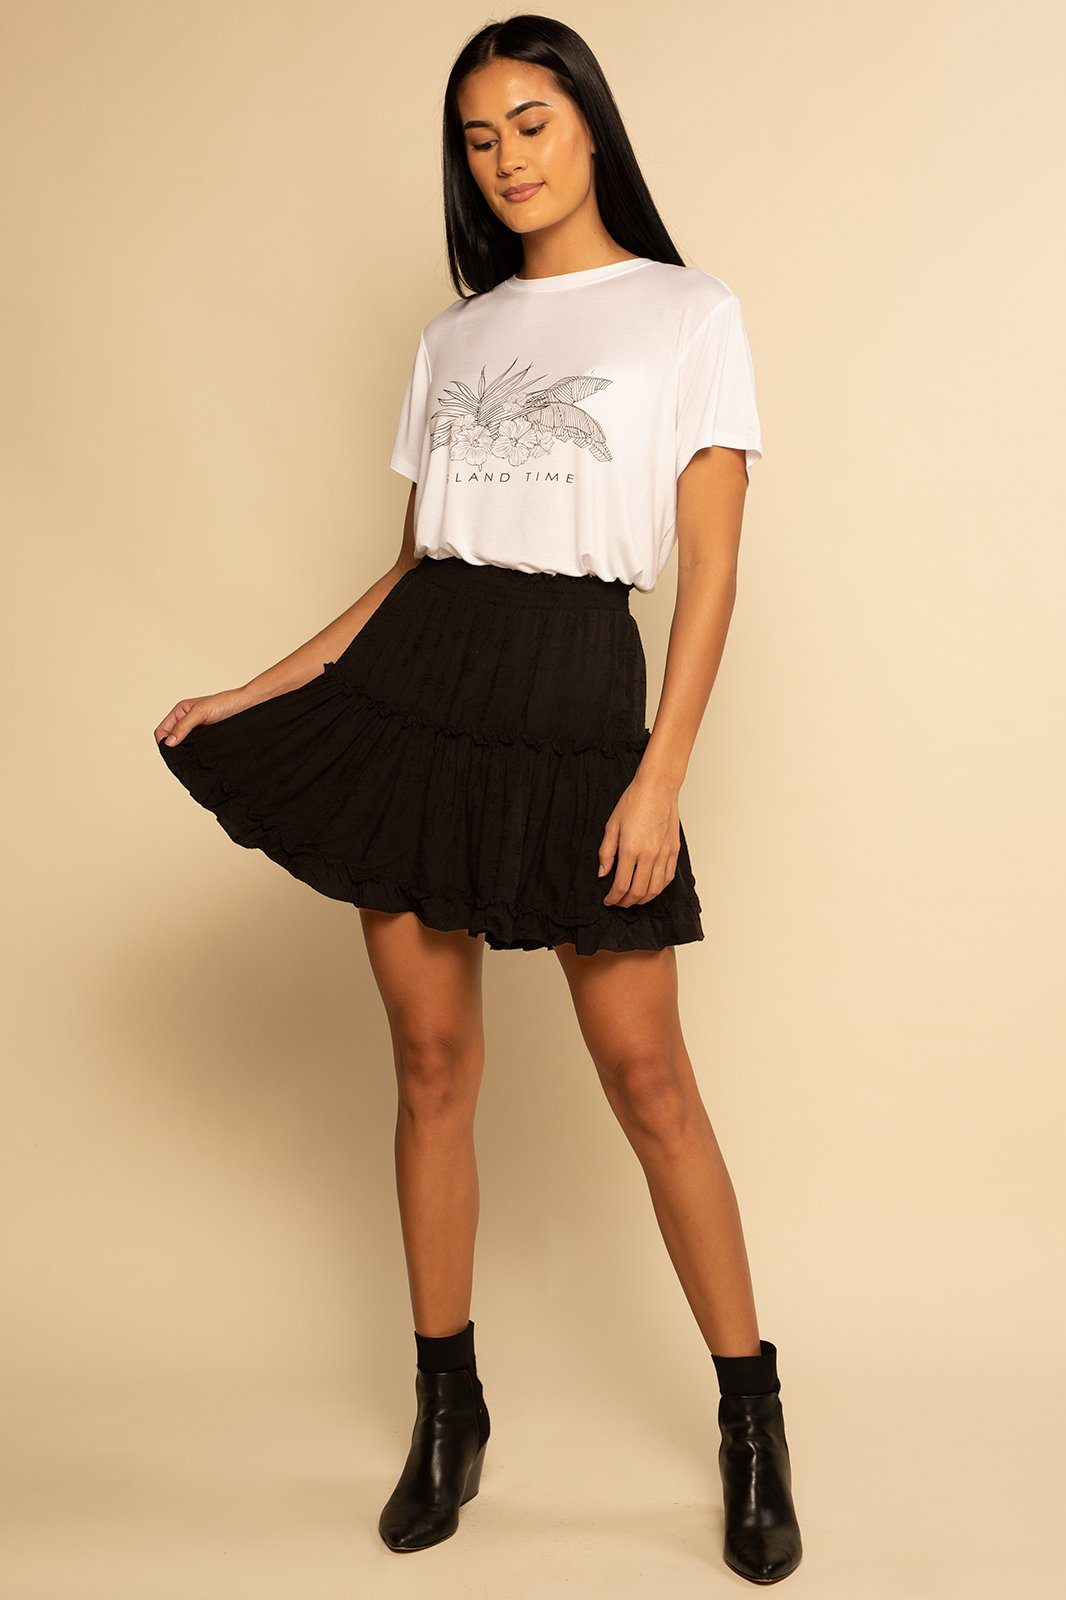 Shoreside Skort - Black Texture - Shore